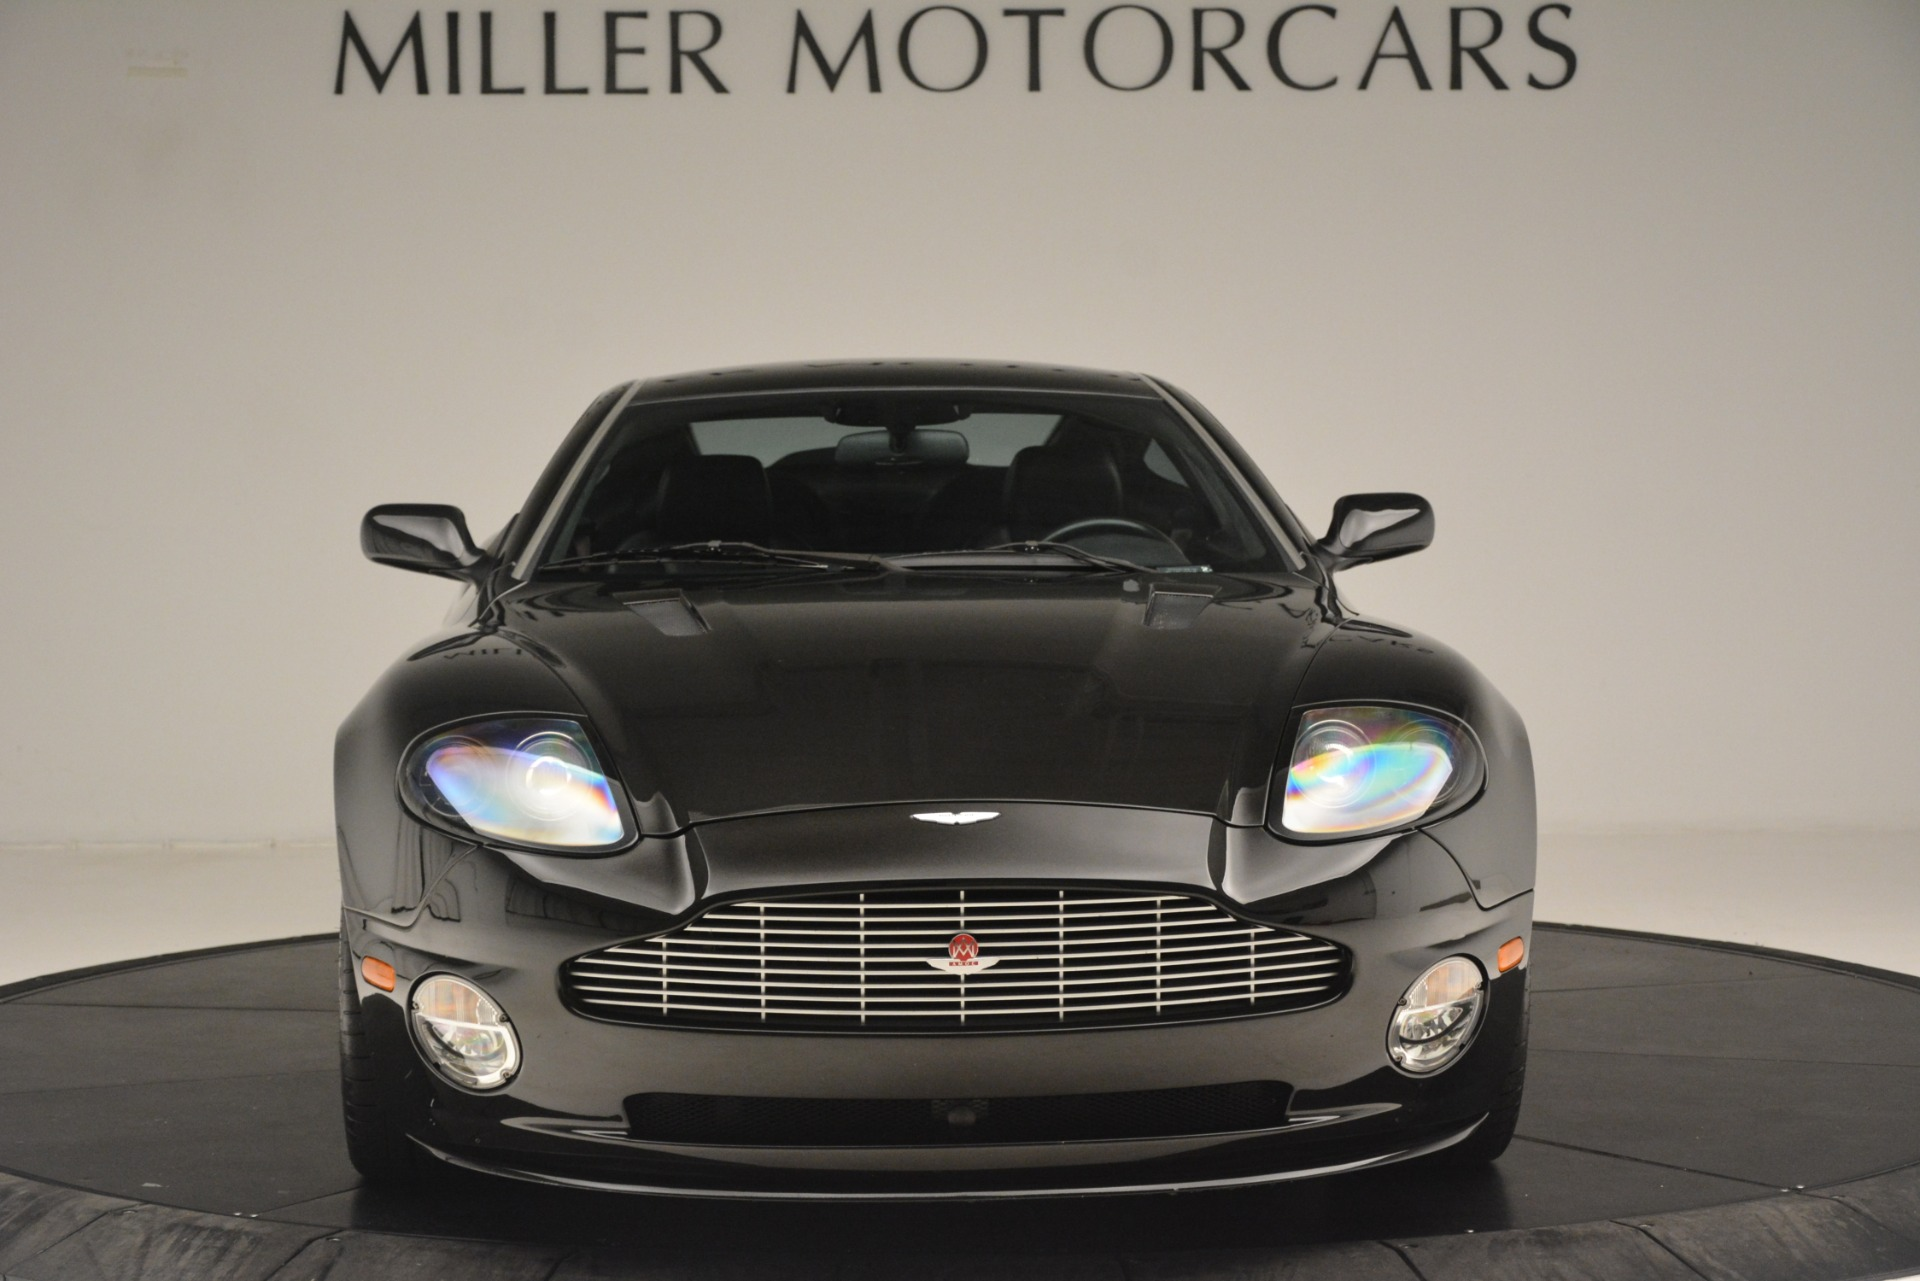 Used 2004 Aston Martin V12 Vanquish  For Sale In Westport, CT 3160_p5